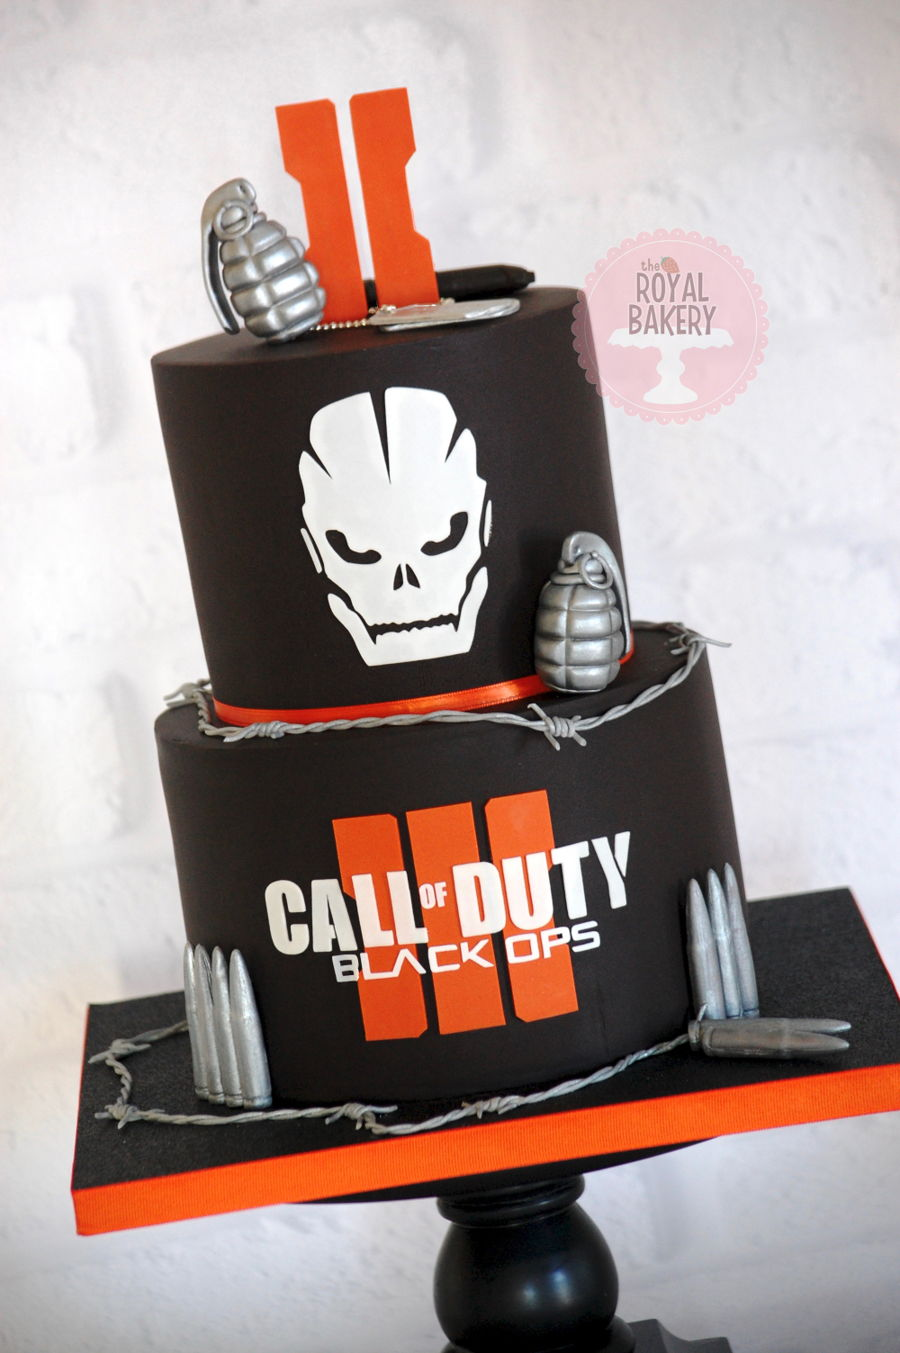 Call Of Duty Black Ops Iii Cake Cakecentral Com